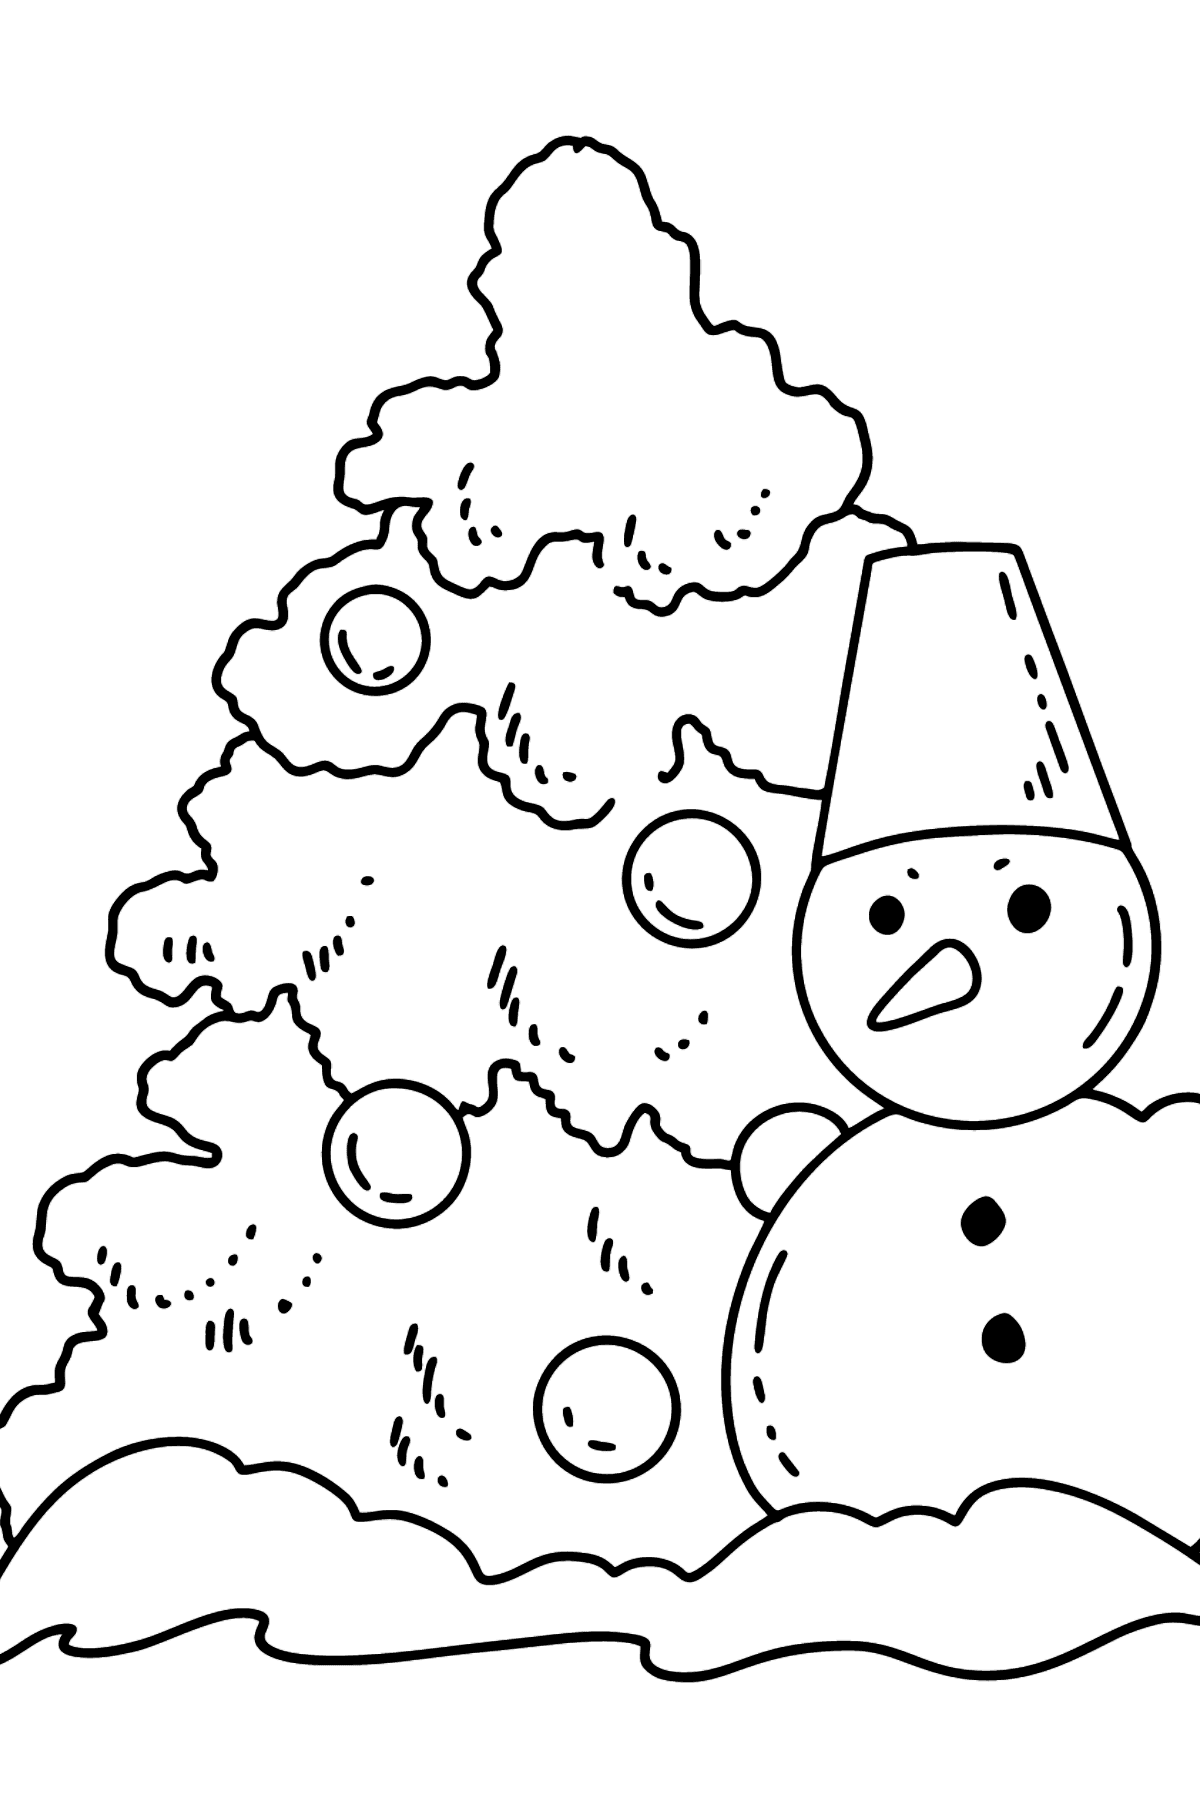 Christmas Tree and Snowman coloring page - Coloring Pages for Kids